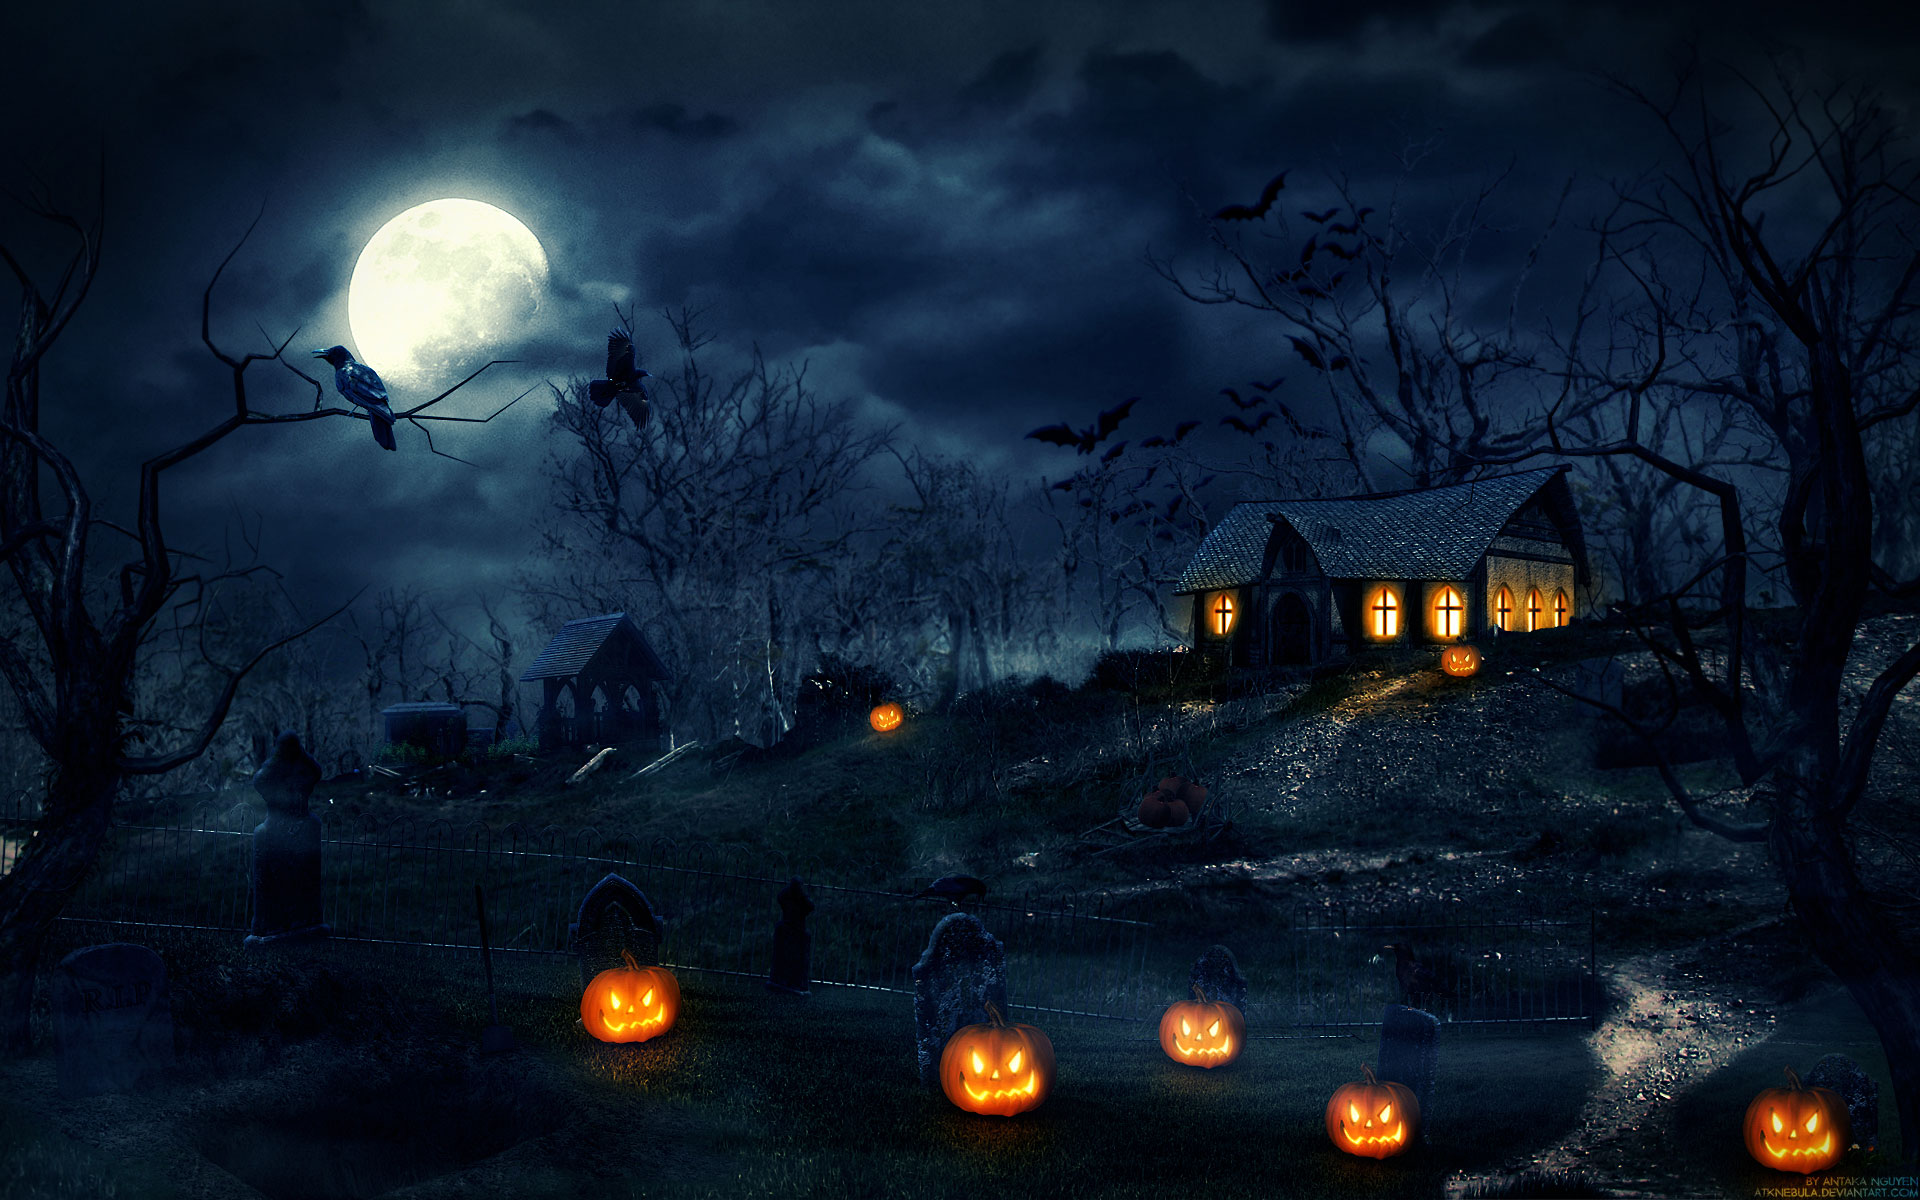 Scary Halloween Backgrounds Wallpaper Collection 2014 1920x1200